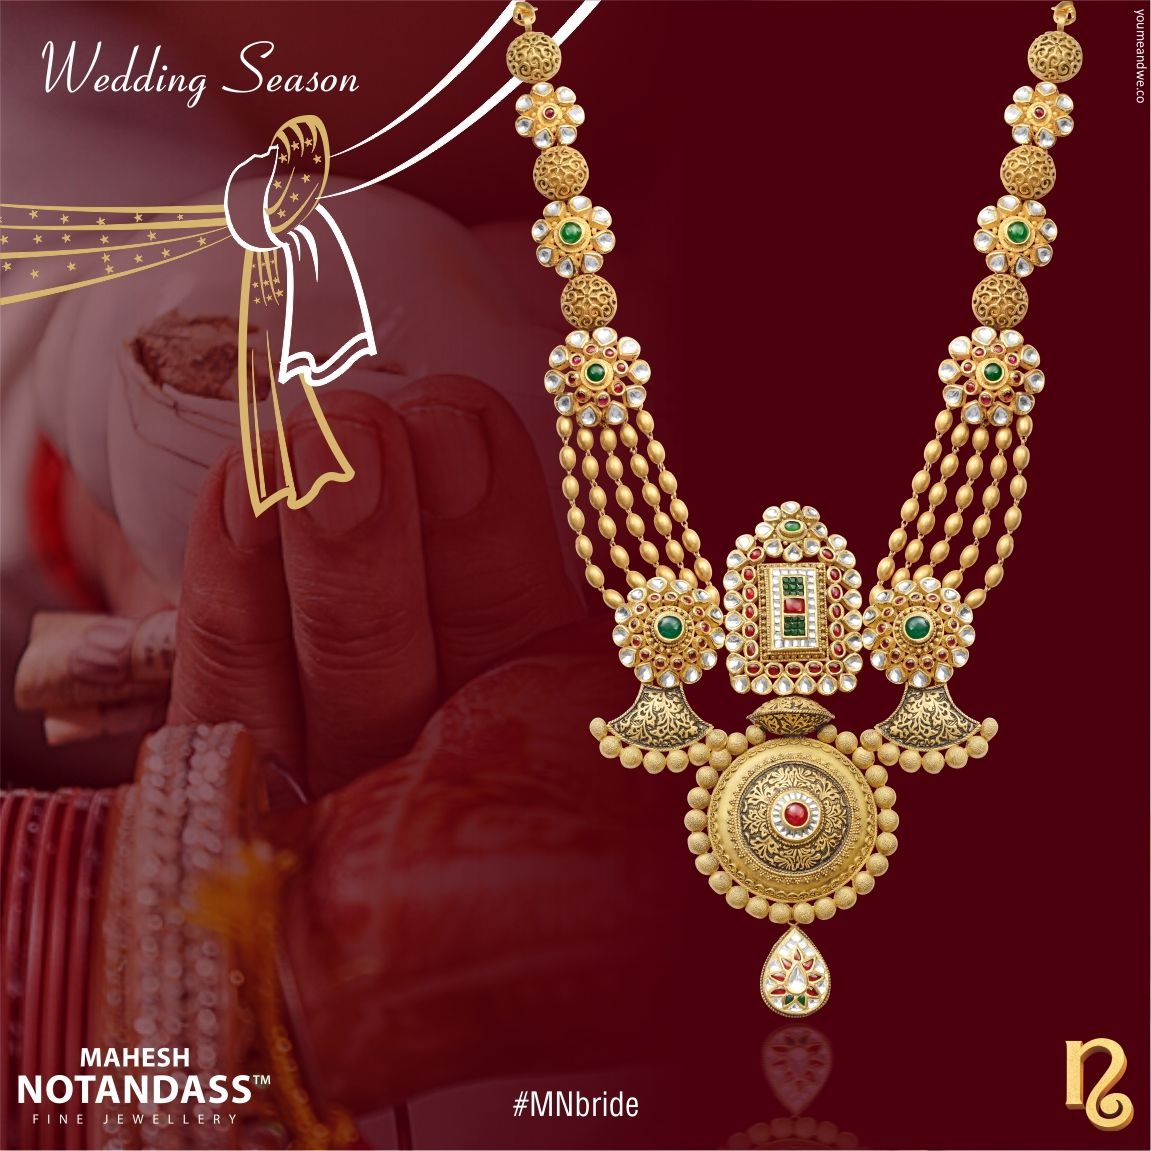 Wedding jewels are timeless covet them for generations to come